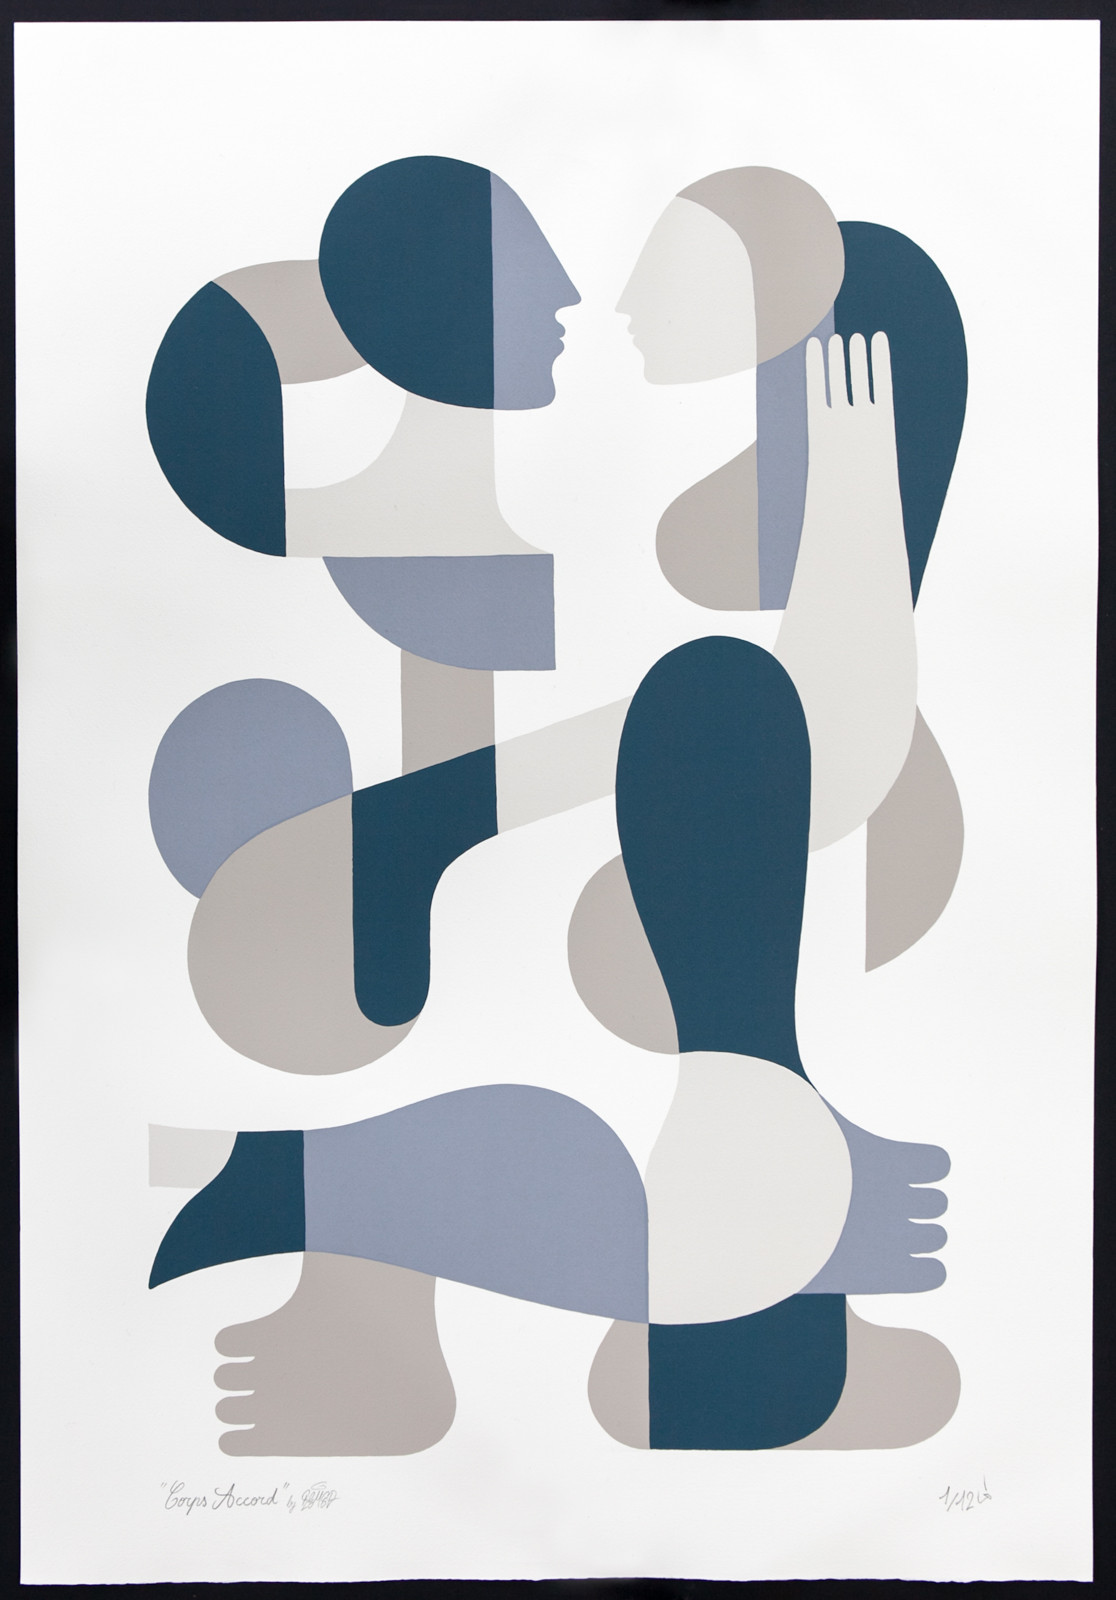 """Corps Accord"" by Remed.  66 x 96cm 4-color Screenprint.  Ed of 12 S/N.  €420 ($461)"